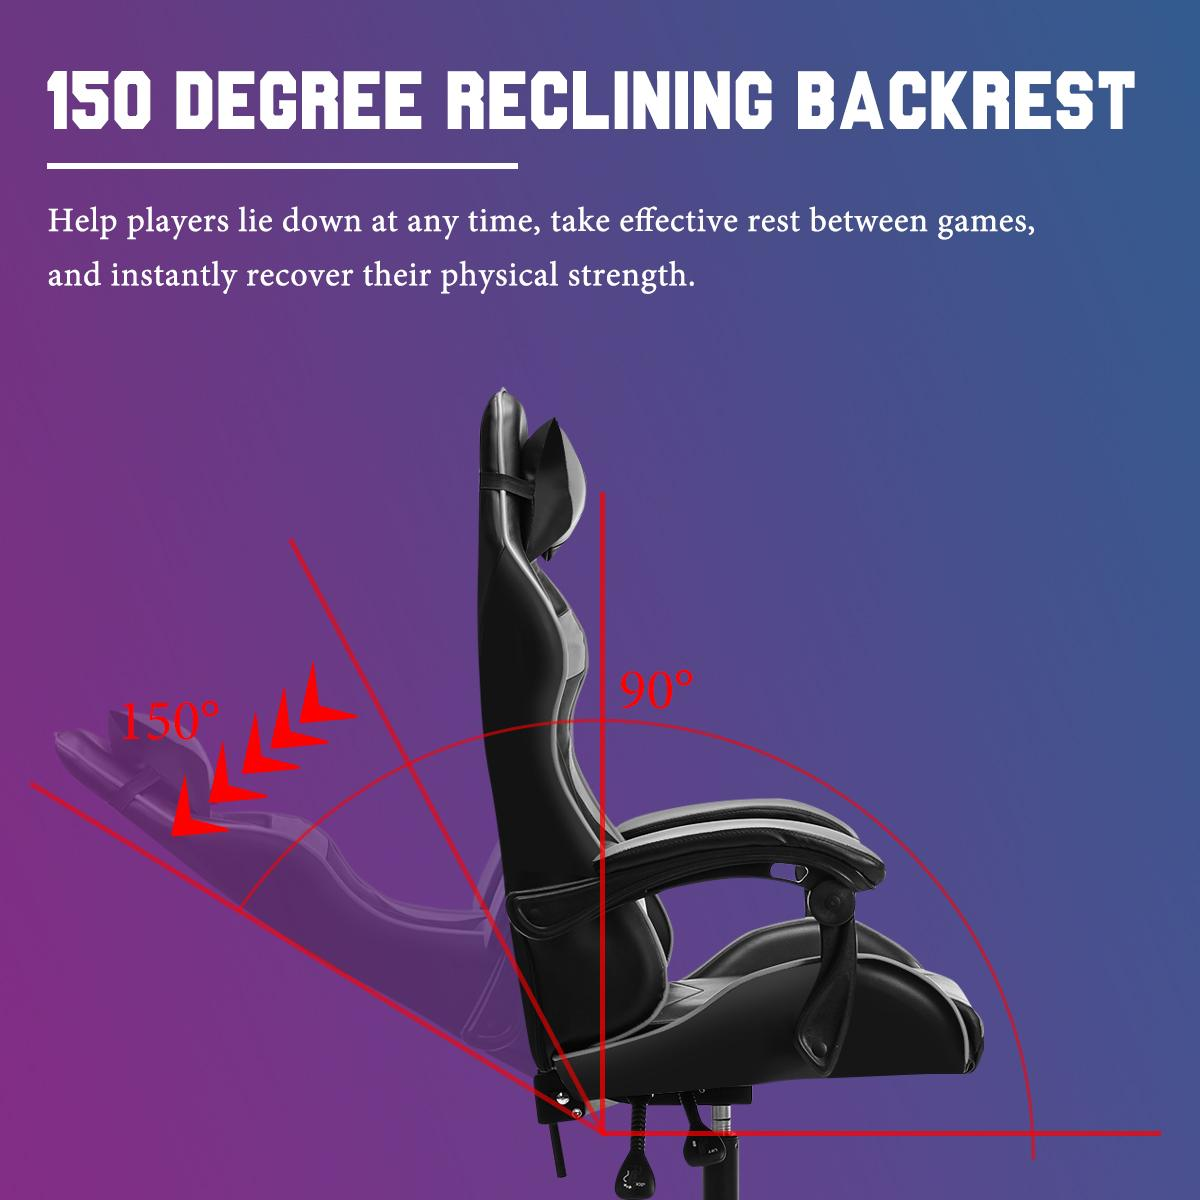 He8ded09527284edba5fa9323f05f874fj - Adjustable Office Chair Gaming Ergonomic Leather Racing Desk Chairs Gaming Computer Chaise Game Chairs Reclining Seating